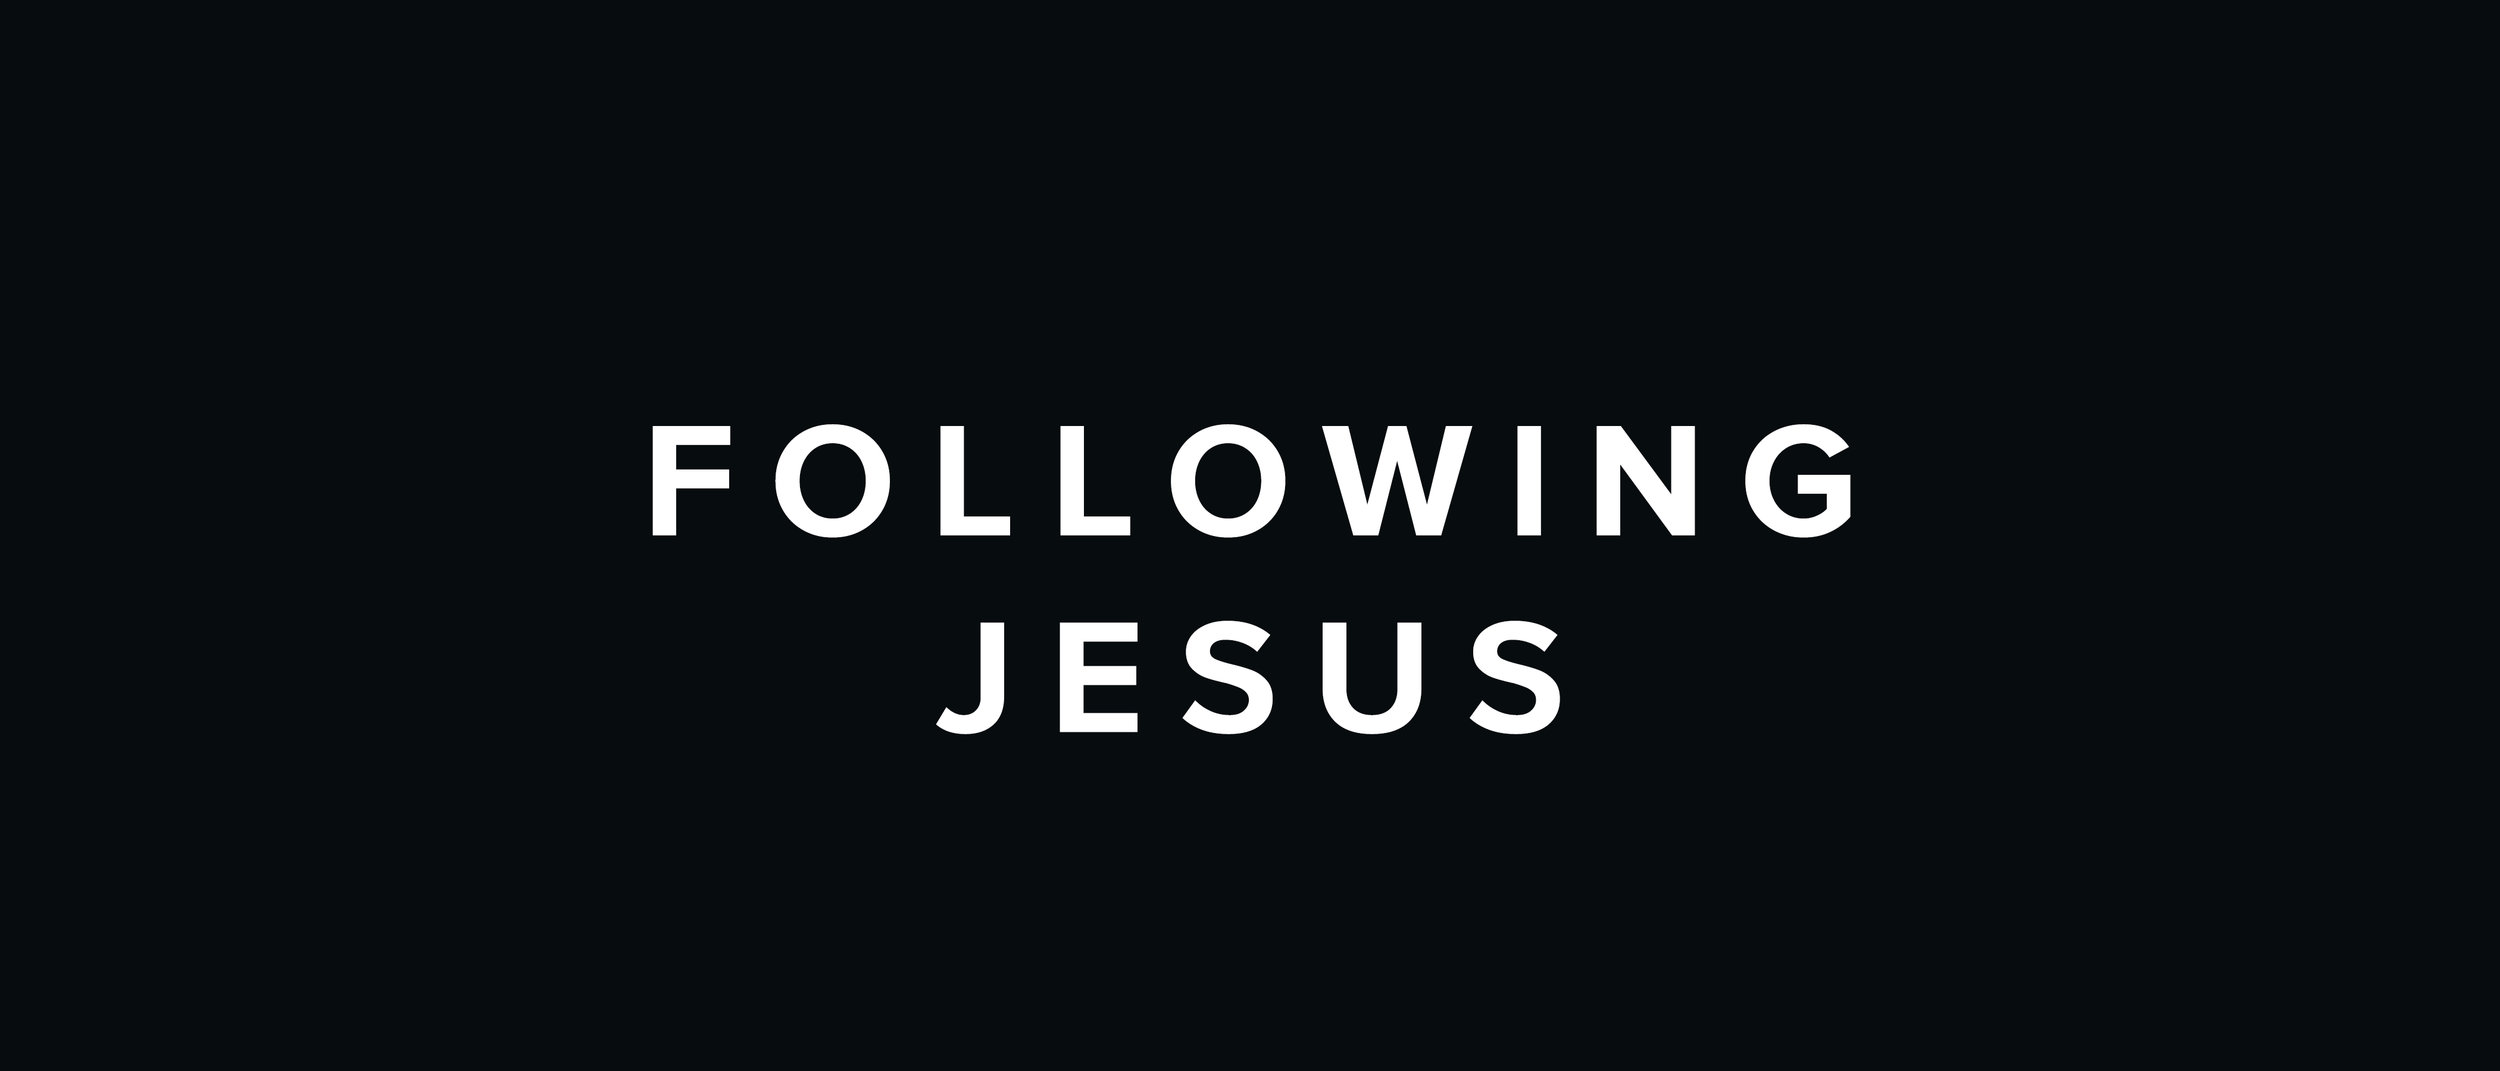 FollowingJesus.jpg